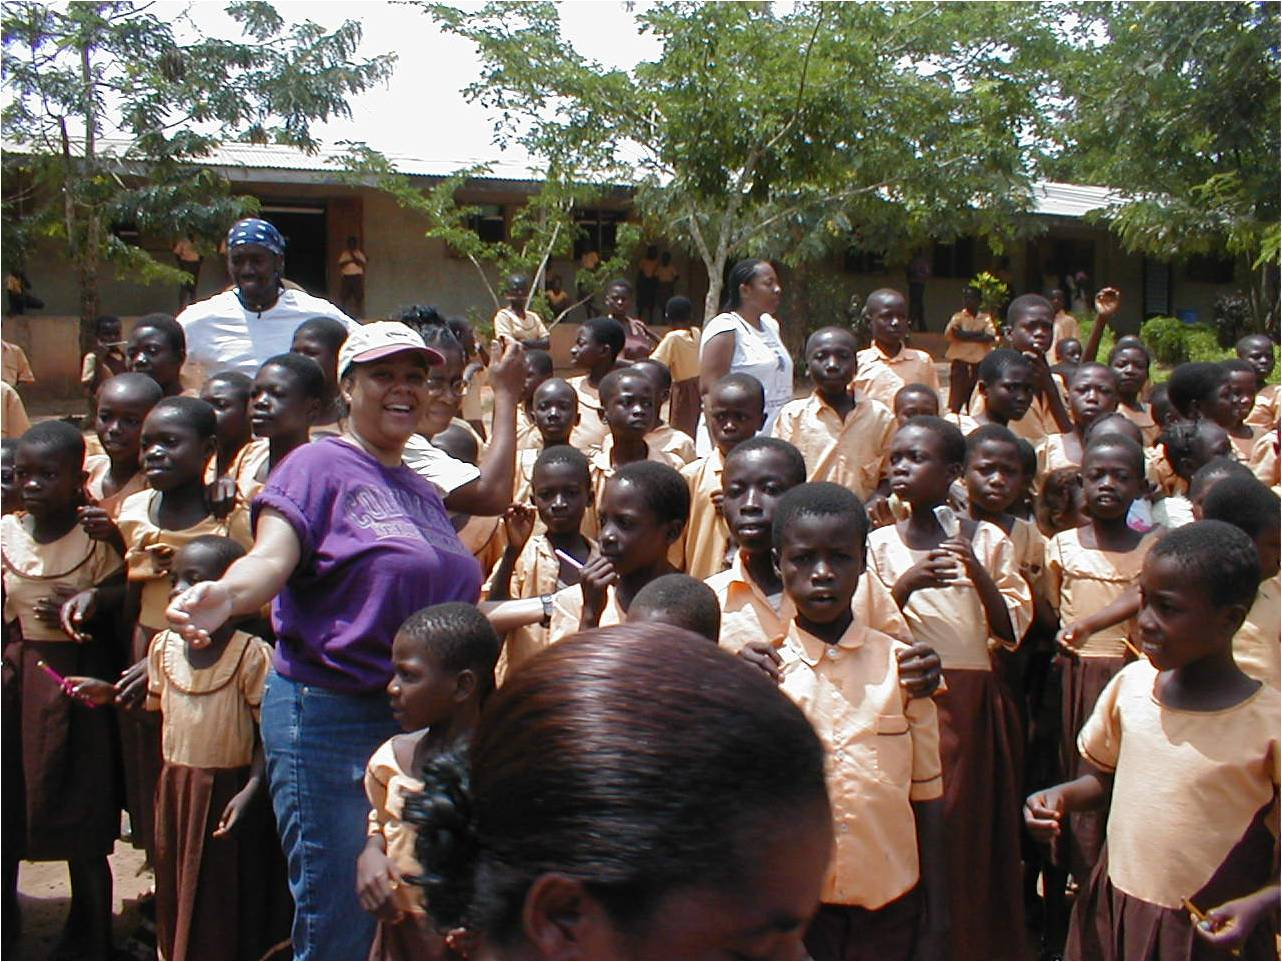 Volunteers enjoying the children of Ghana